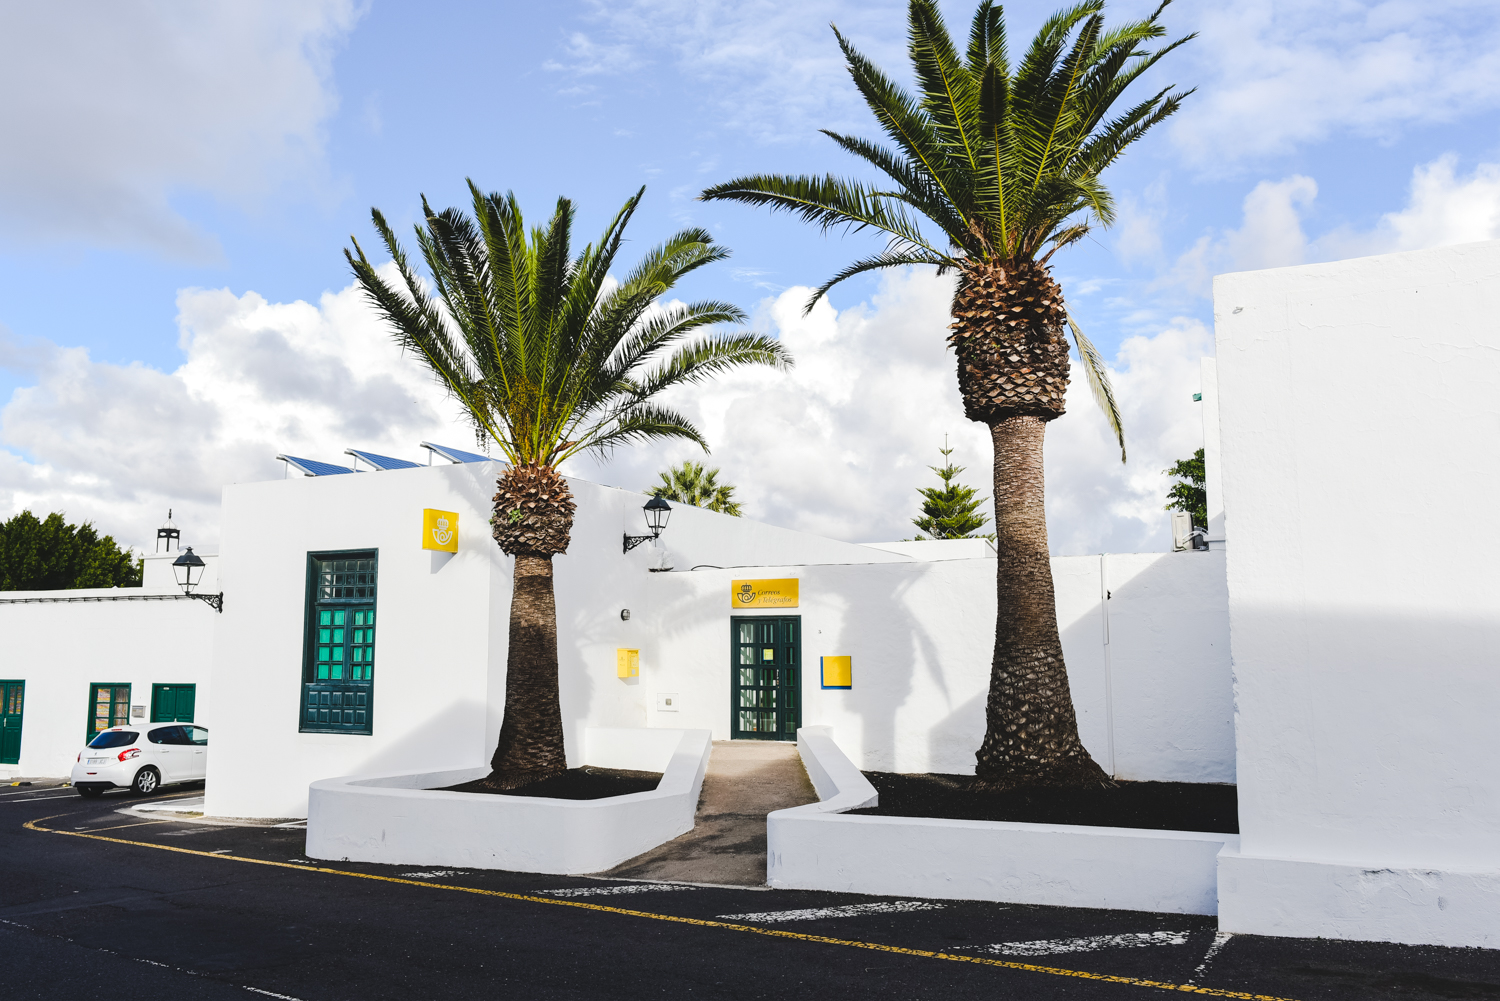 Post office Yaiza Lanzarote